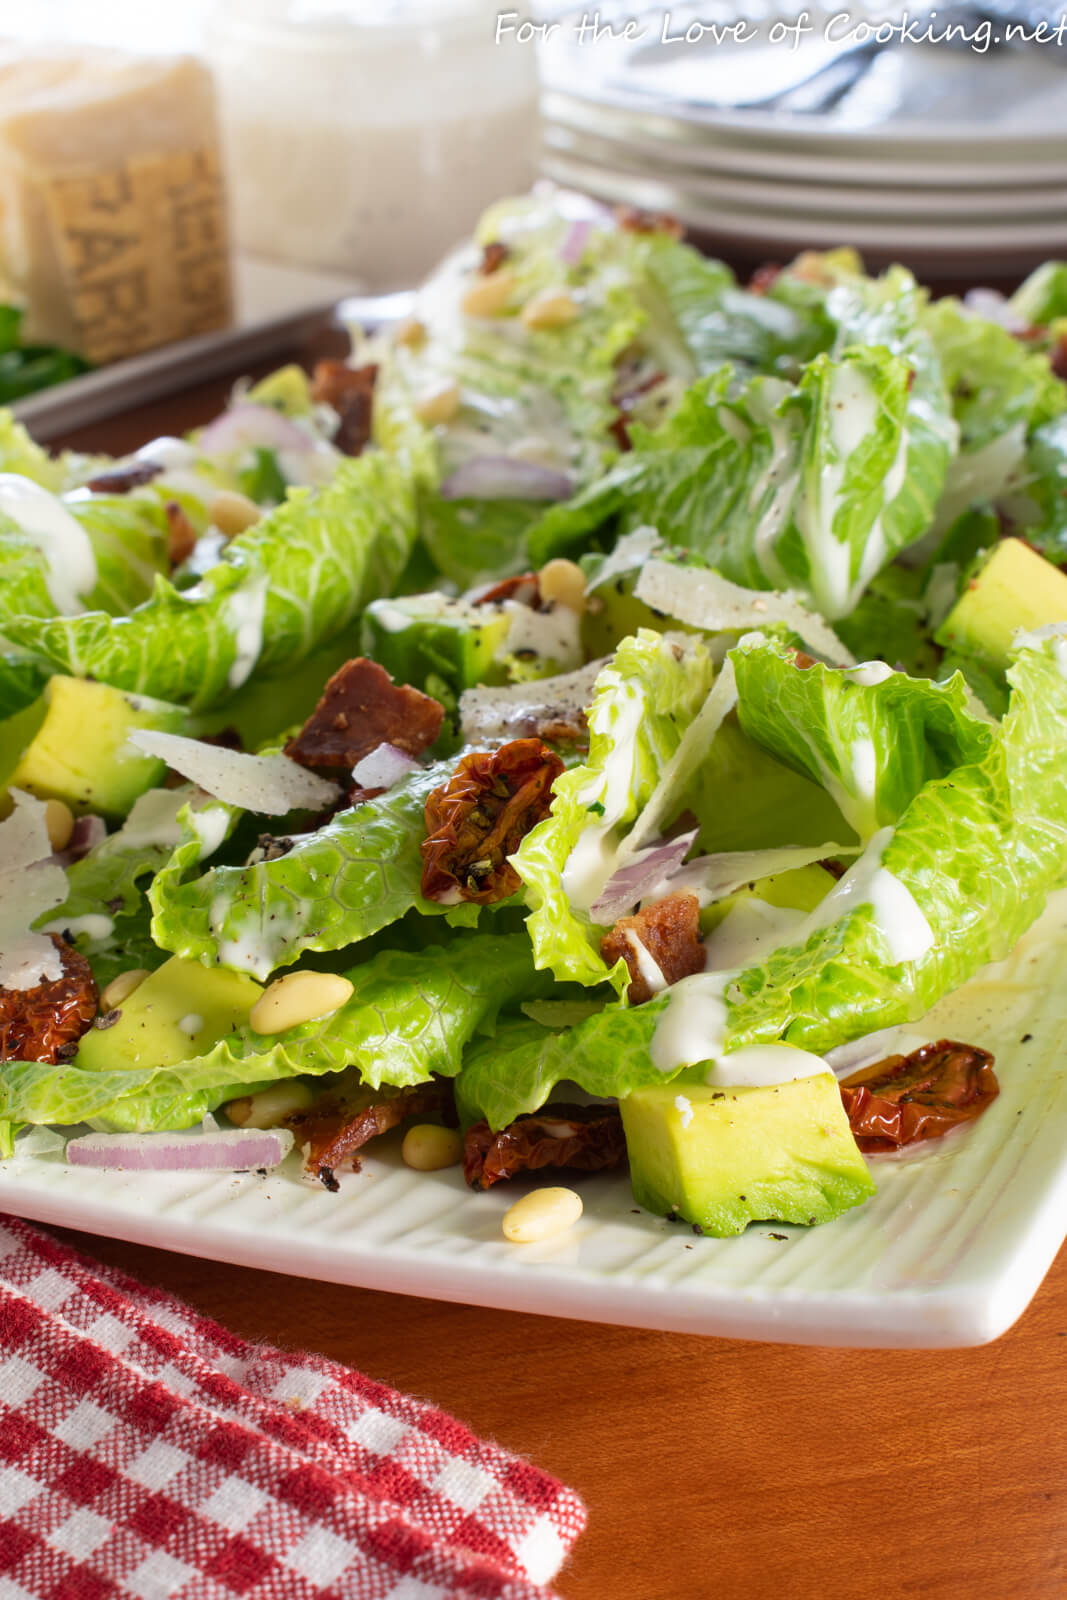 Hearts of Romaine Salad with Bacon, Avocado and Sun Dried Tomato